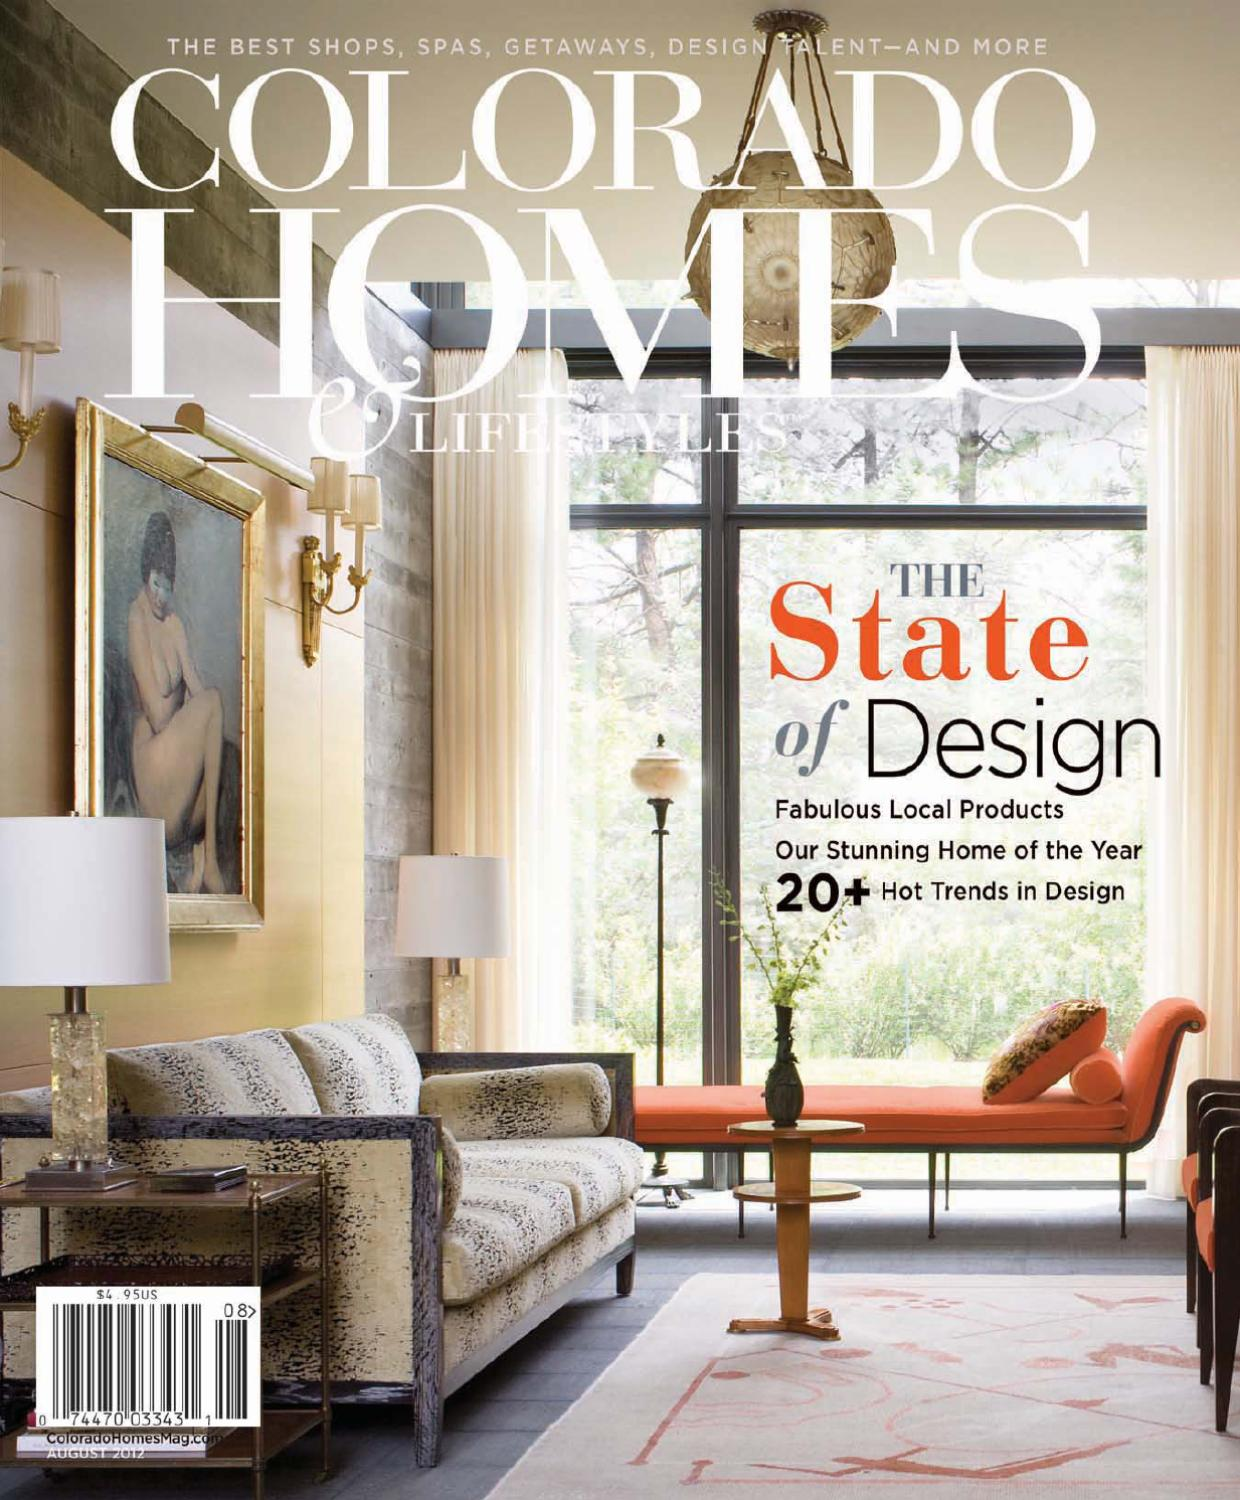 Colorado Homes U0026 Lifestyles By Network Communications Inc.   Issuu